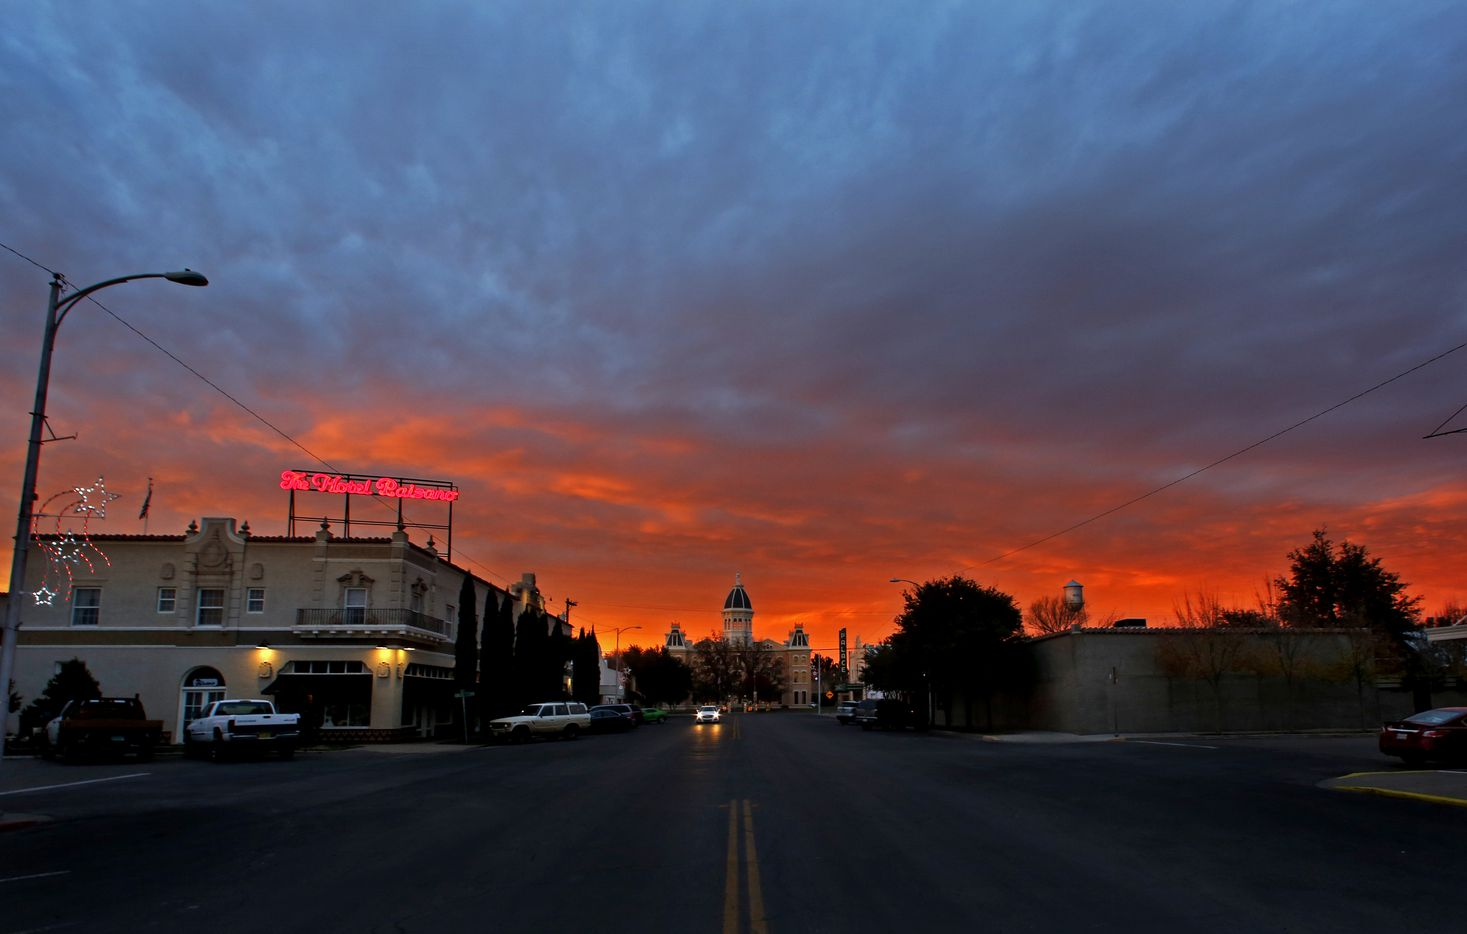 The sun sets over The Hotel Paisano and the courthouse in Marfa on Dec. 7, 2016.